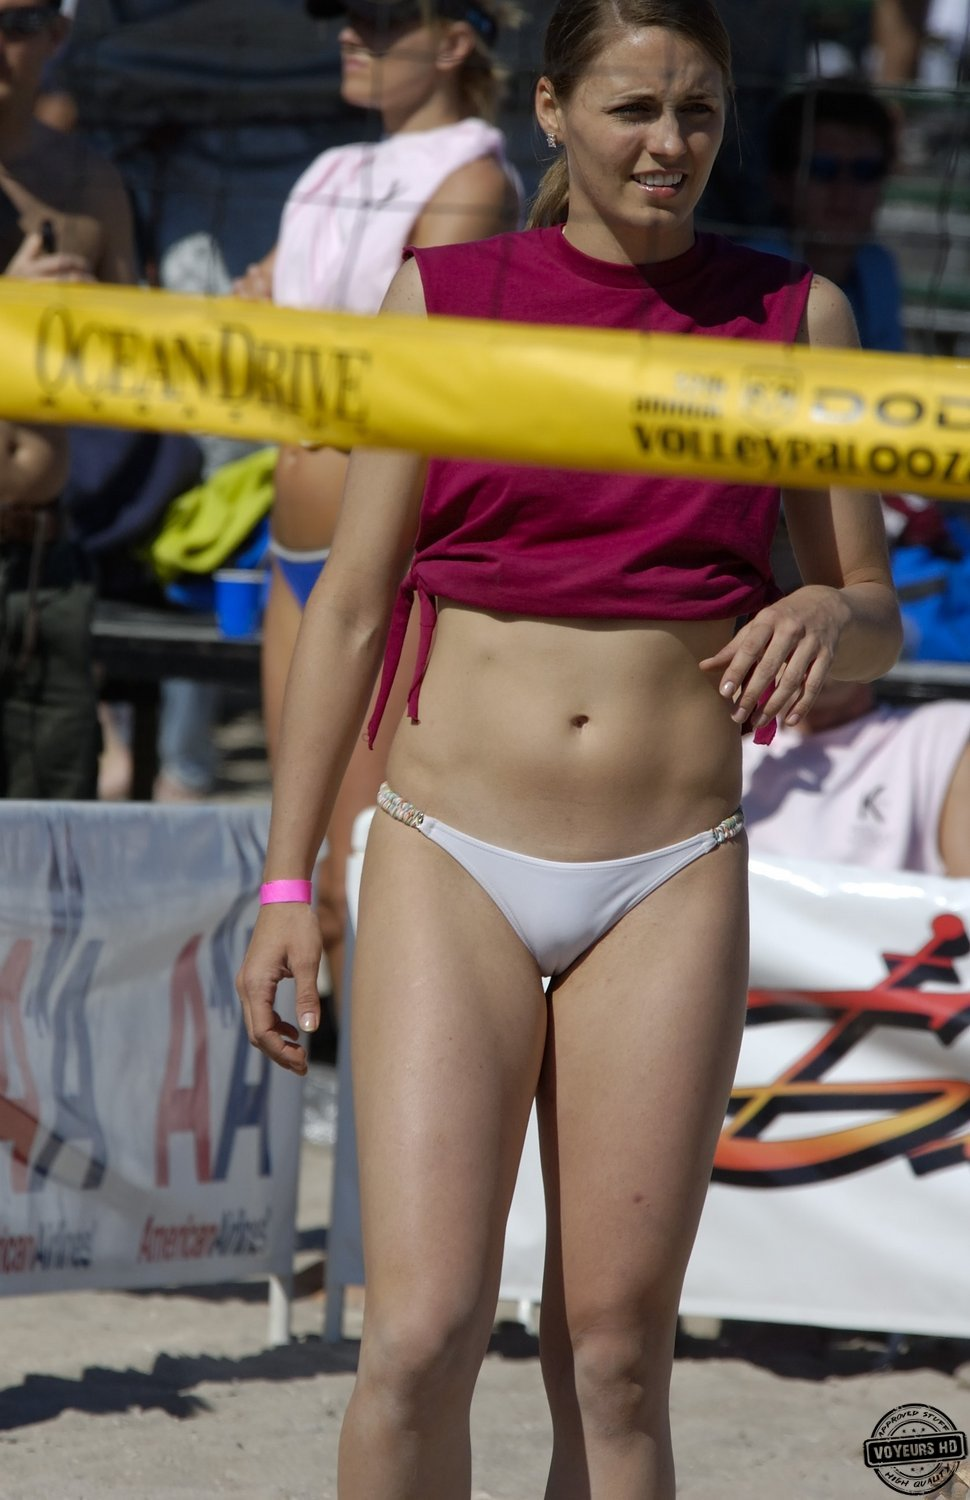 What hot hot amateur camel toe